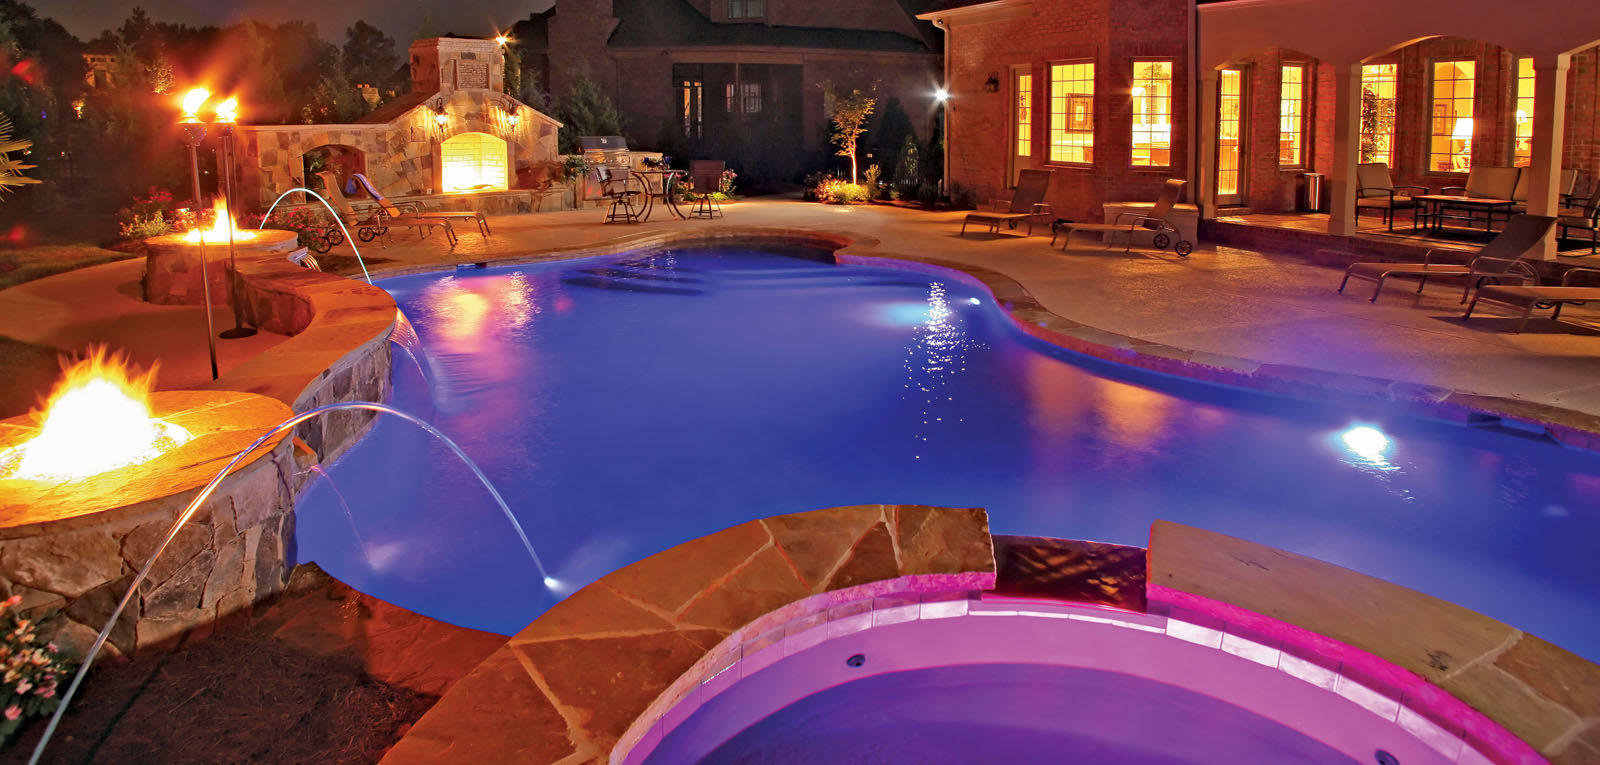 GCategoryBanner-pool-lighting (1)